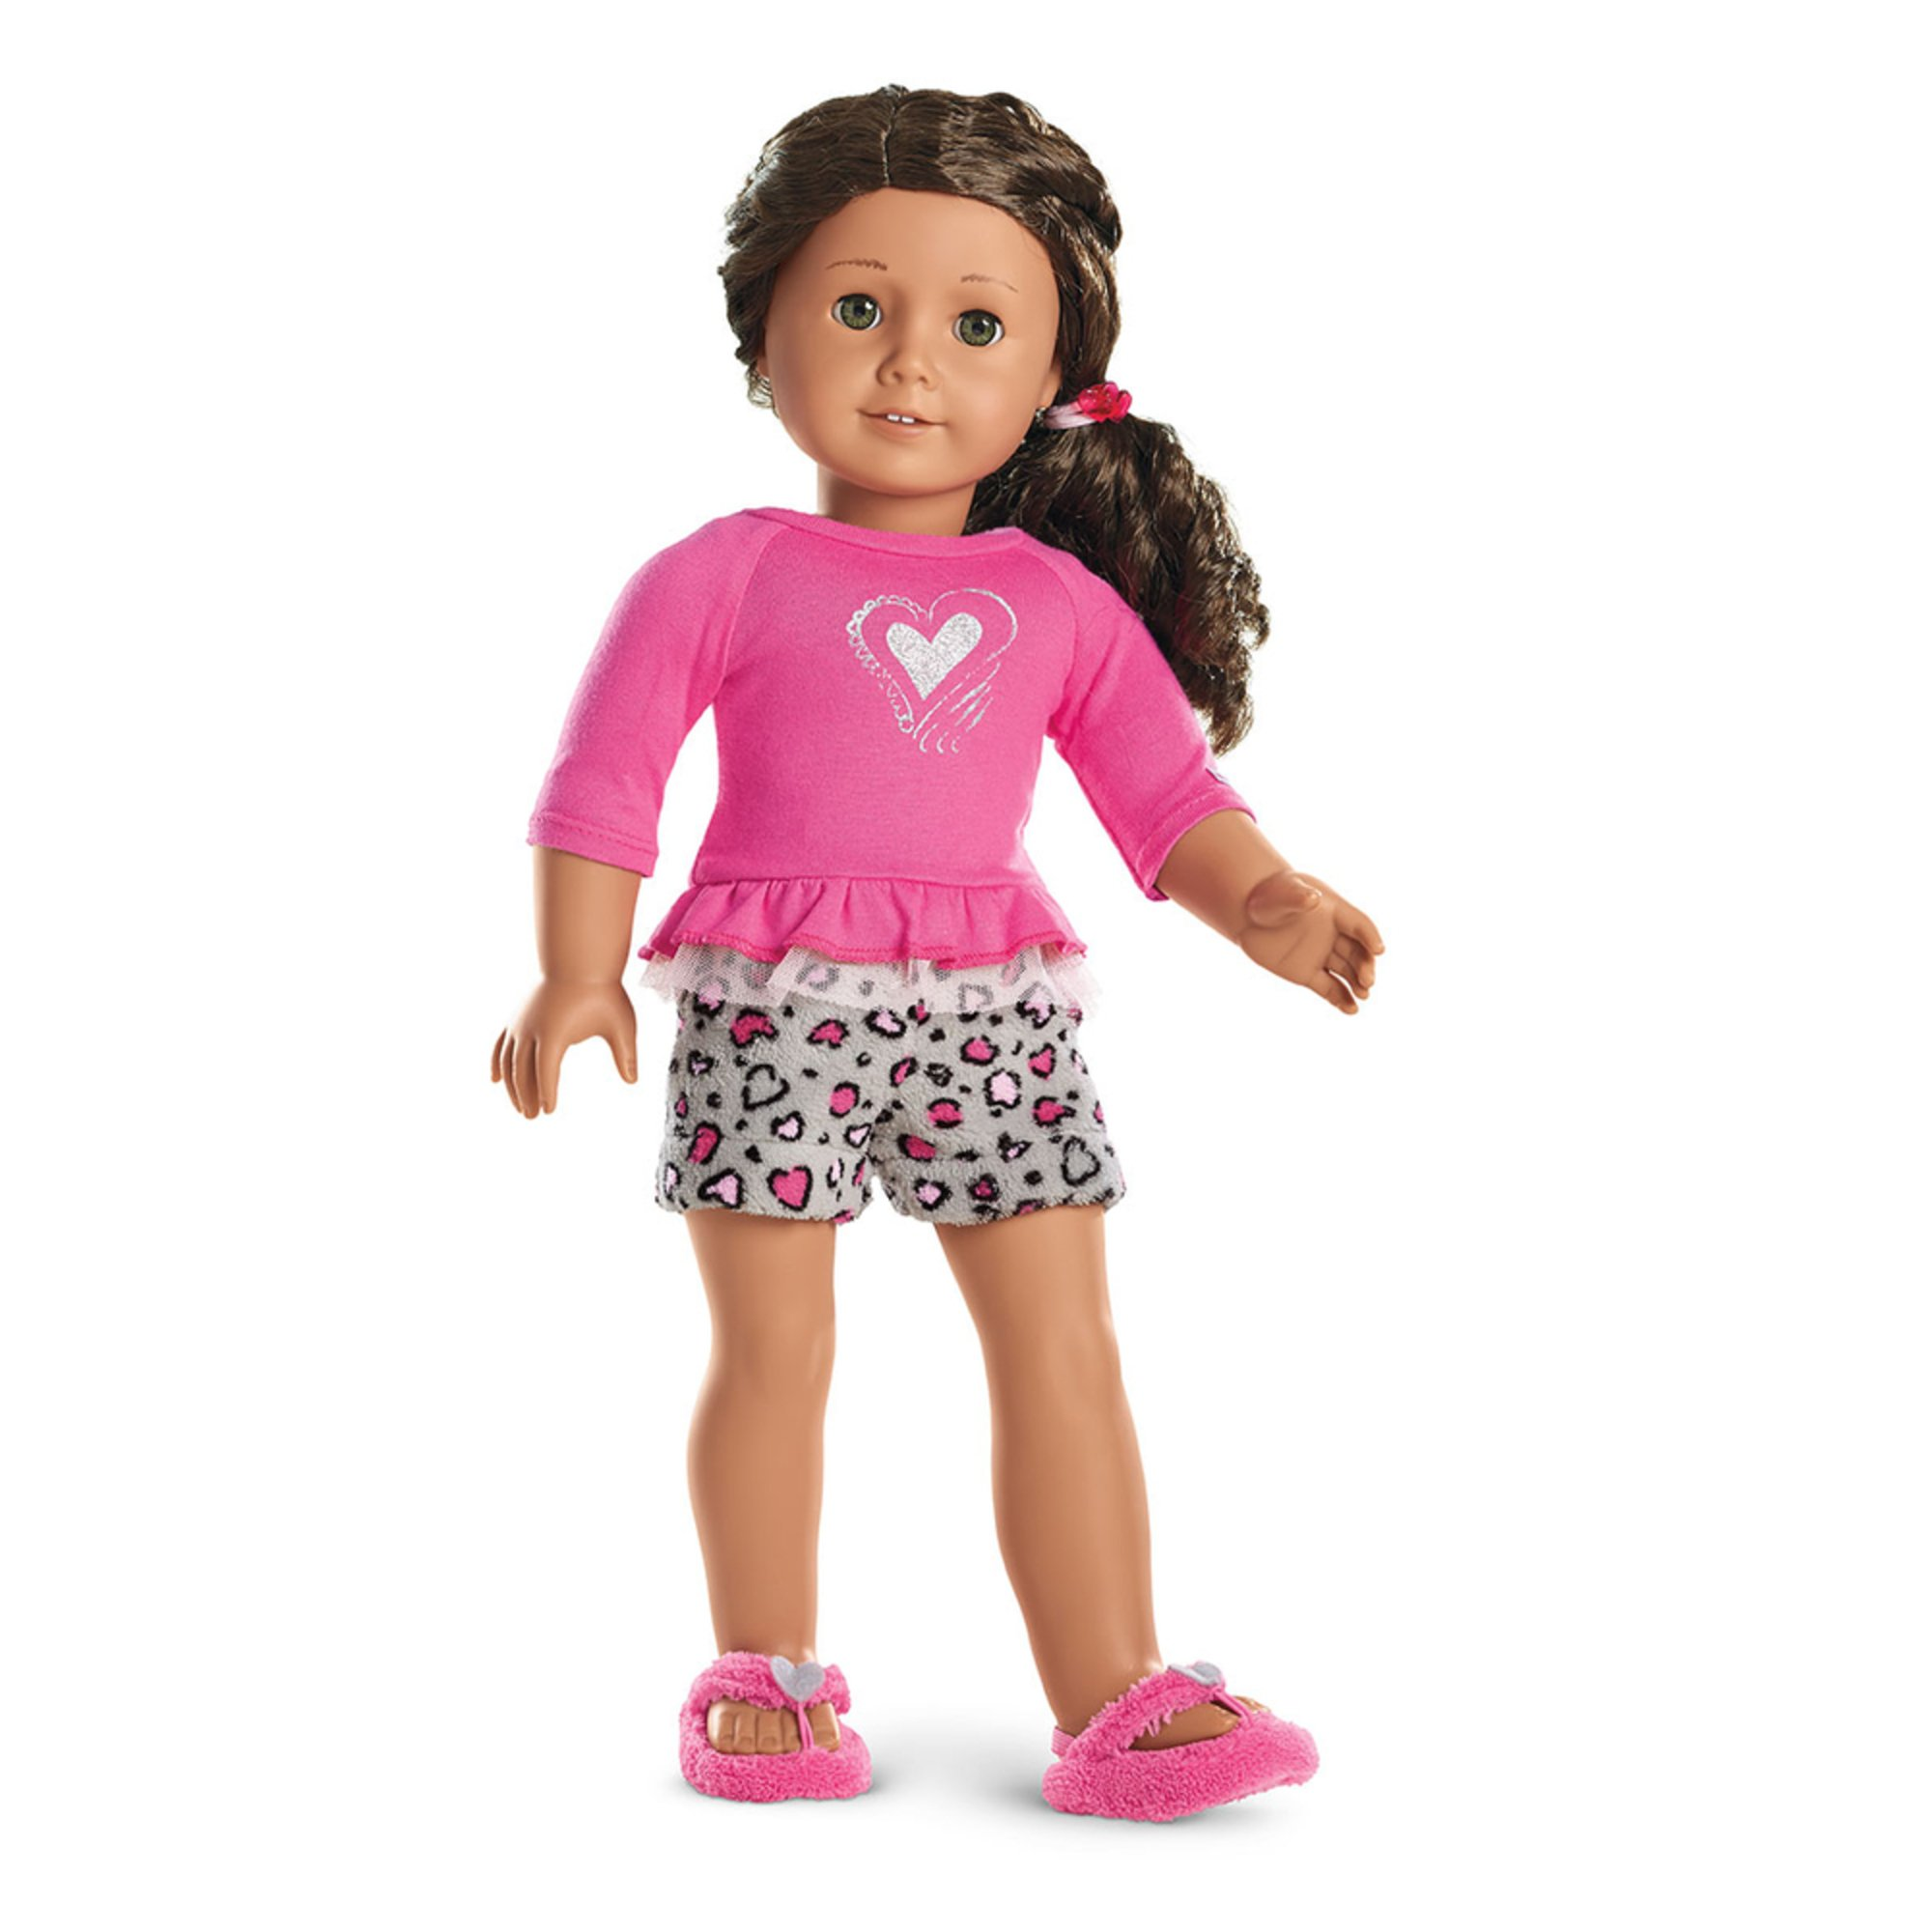 american girl american girl lovely leopard pjs based on 0 reviews msrp ...